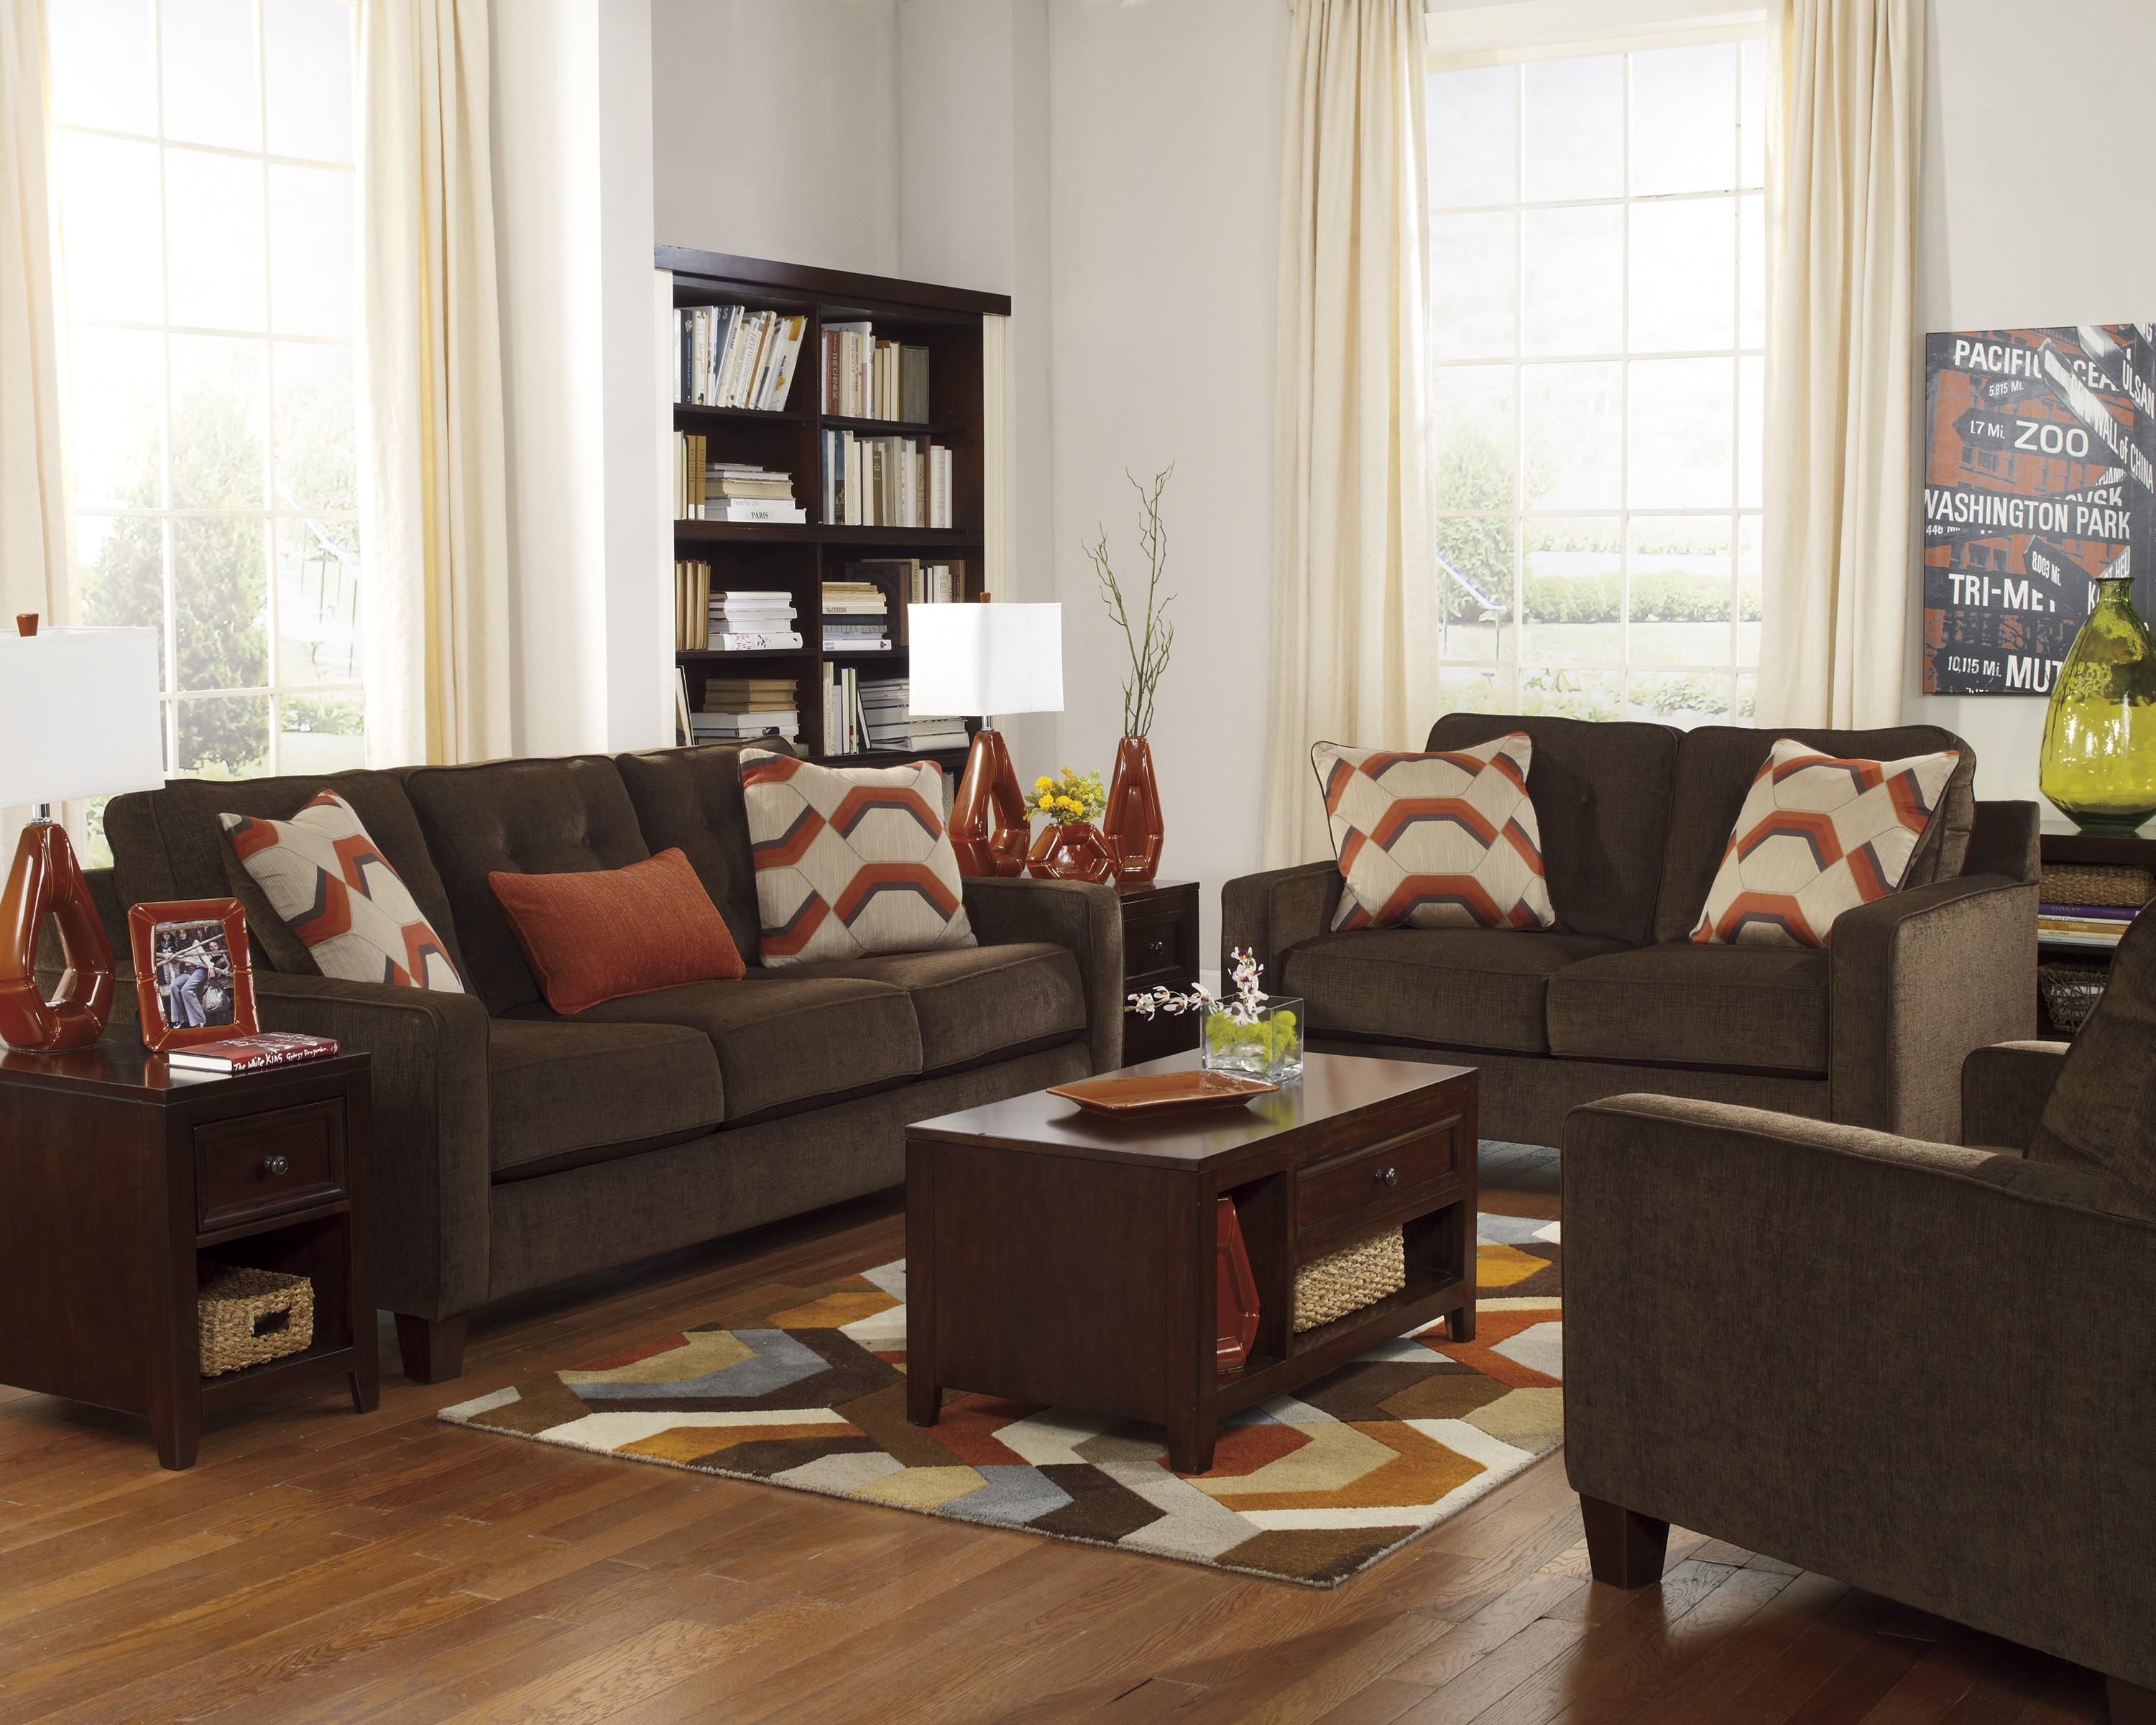 Chocolate Sofa By Signature Design (View 5 of 18)